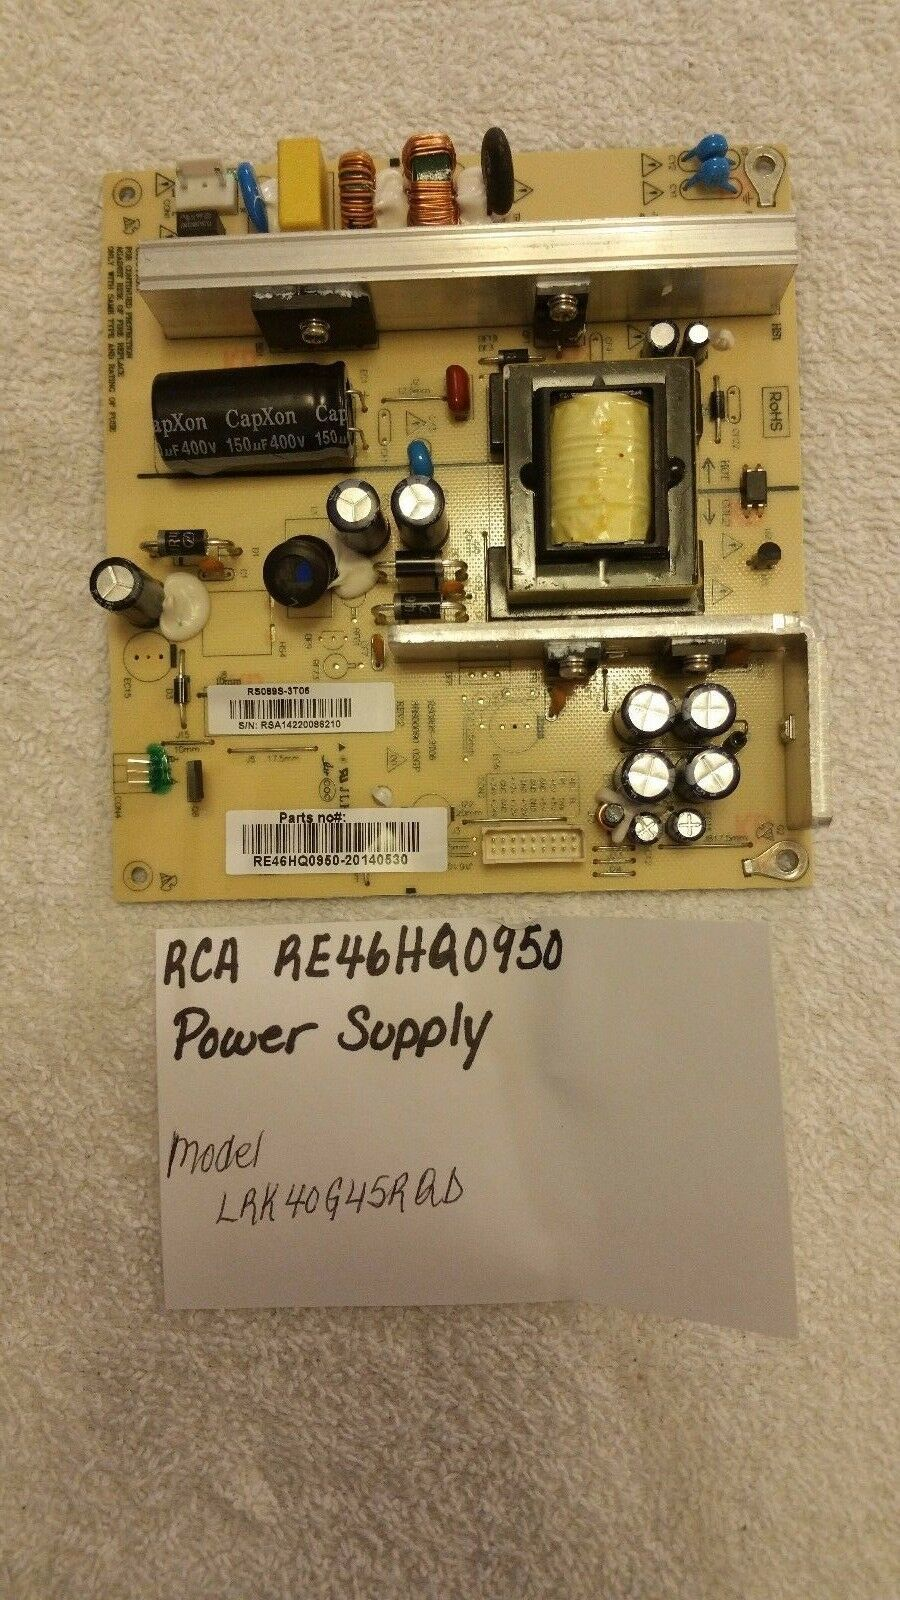 Primary image for RE46HQ0950 Power Supply Board RS089S-3T06 RCA LRK40G45RQD 3BS00090 02GP